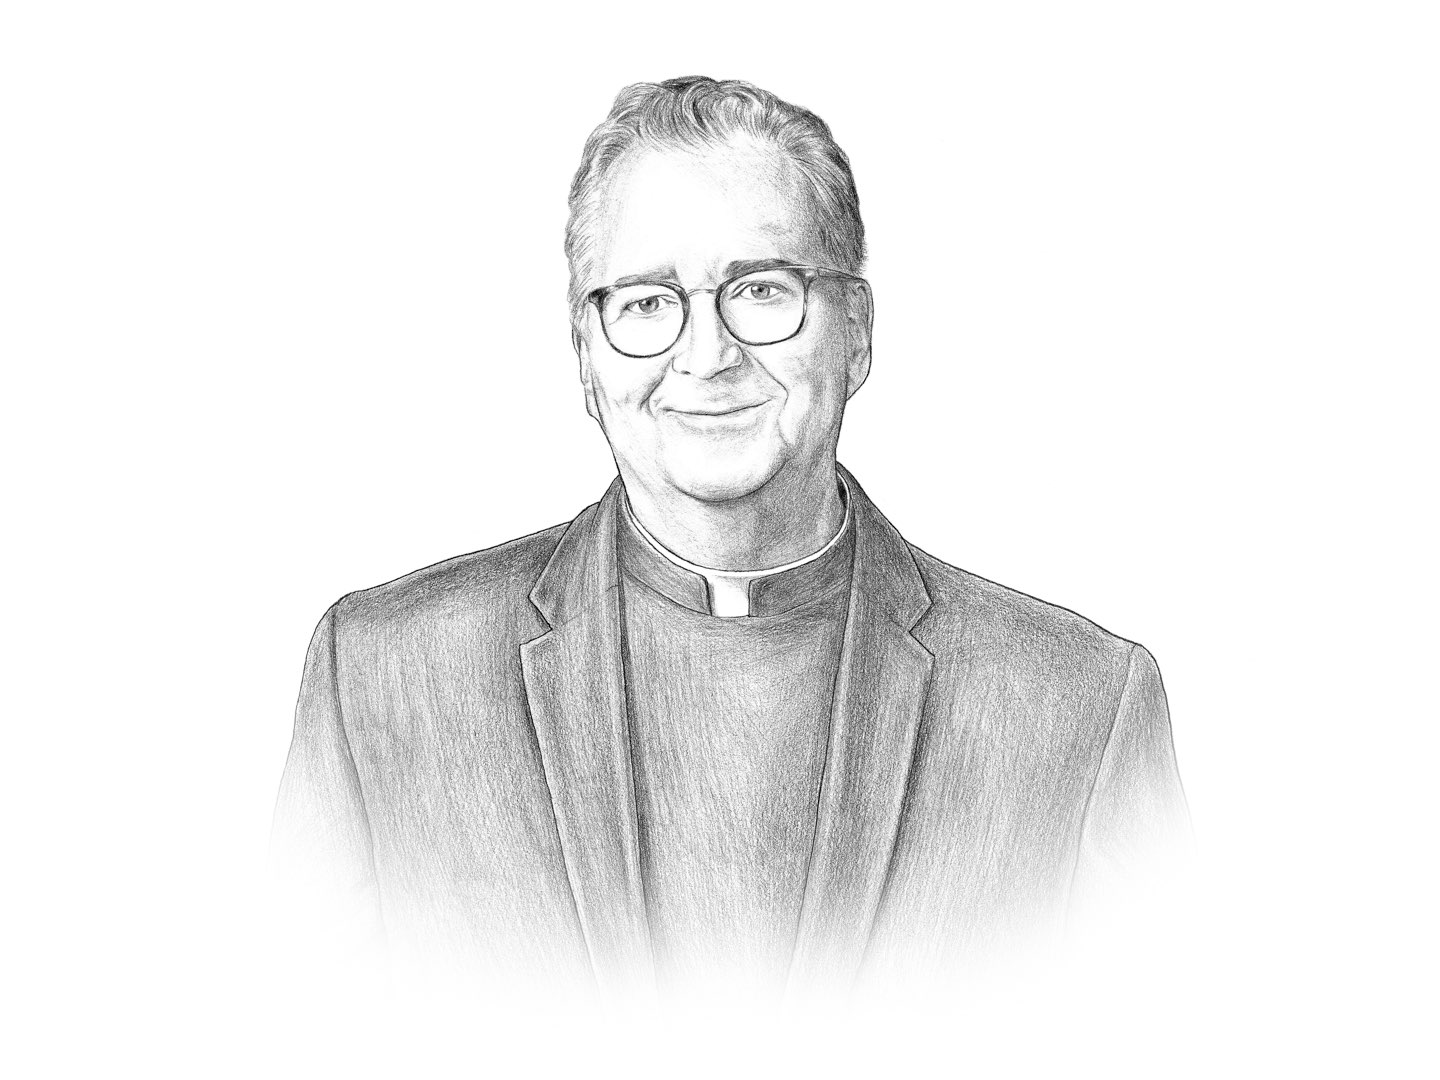 Illustration of Villanova University President the Reverend Peter M. Donohue.